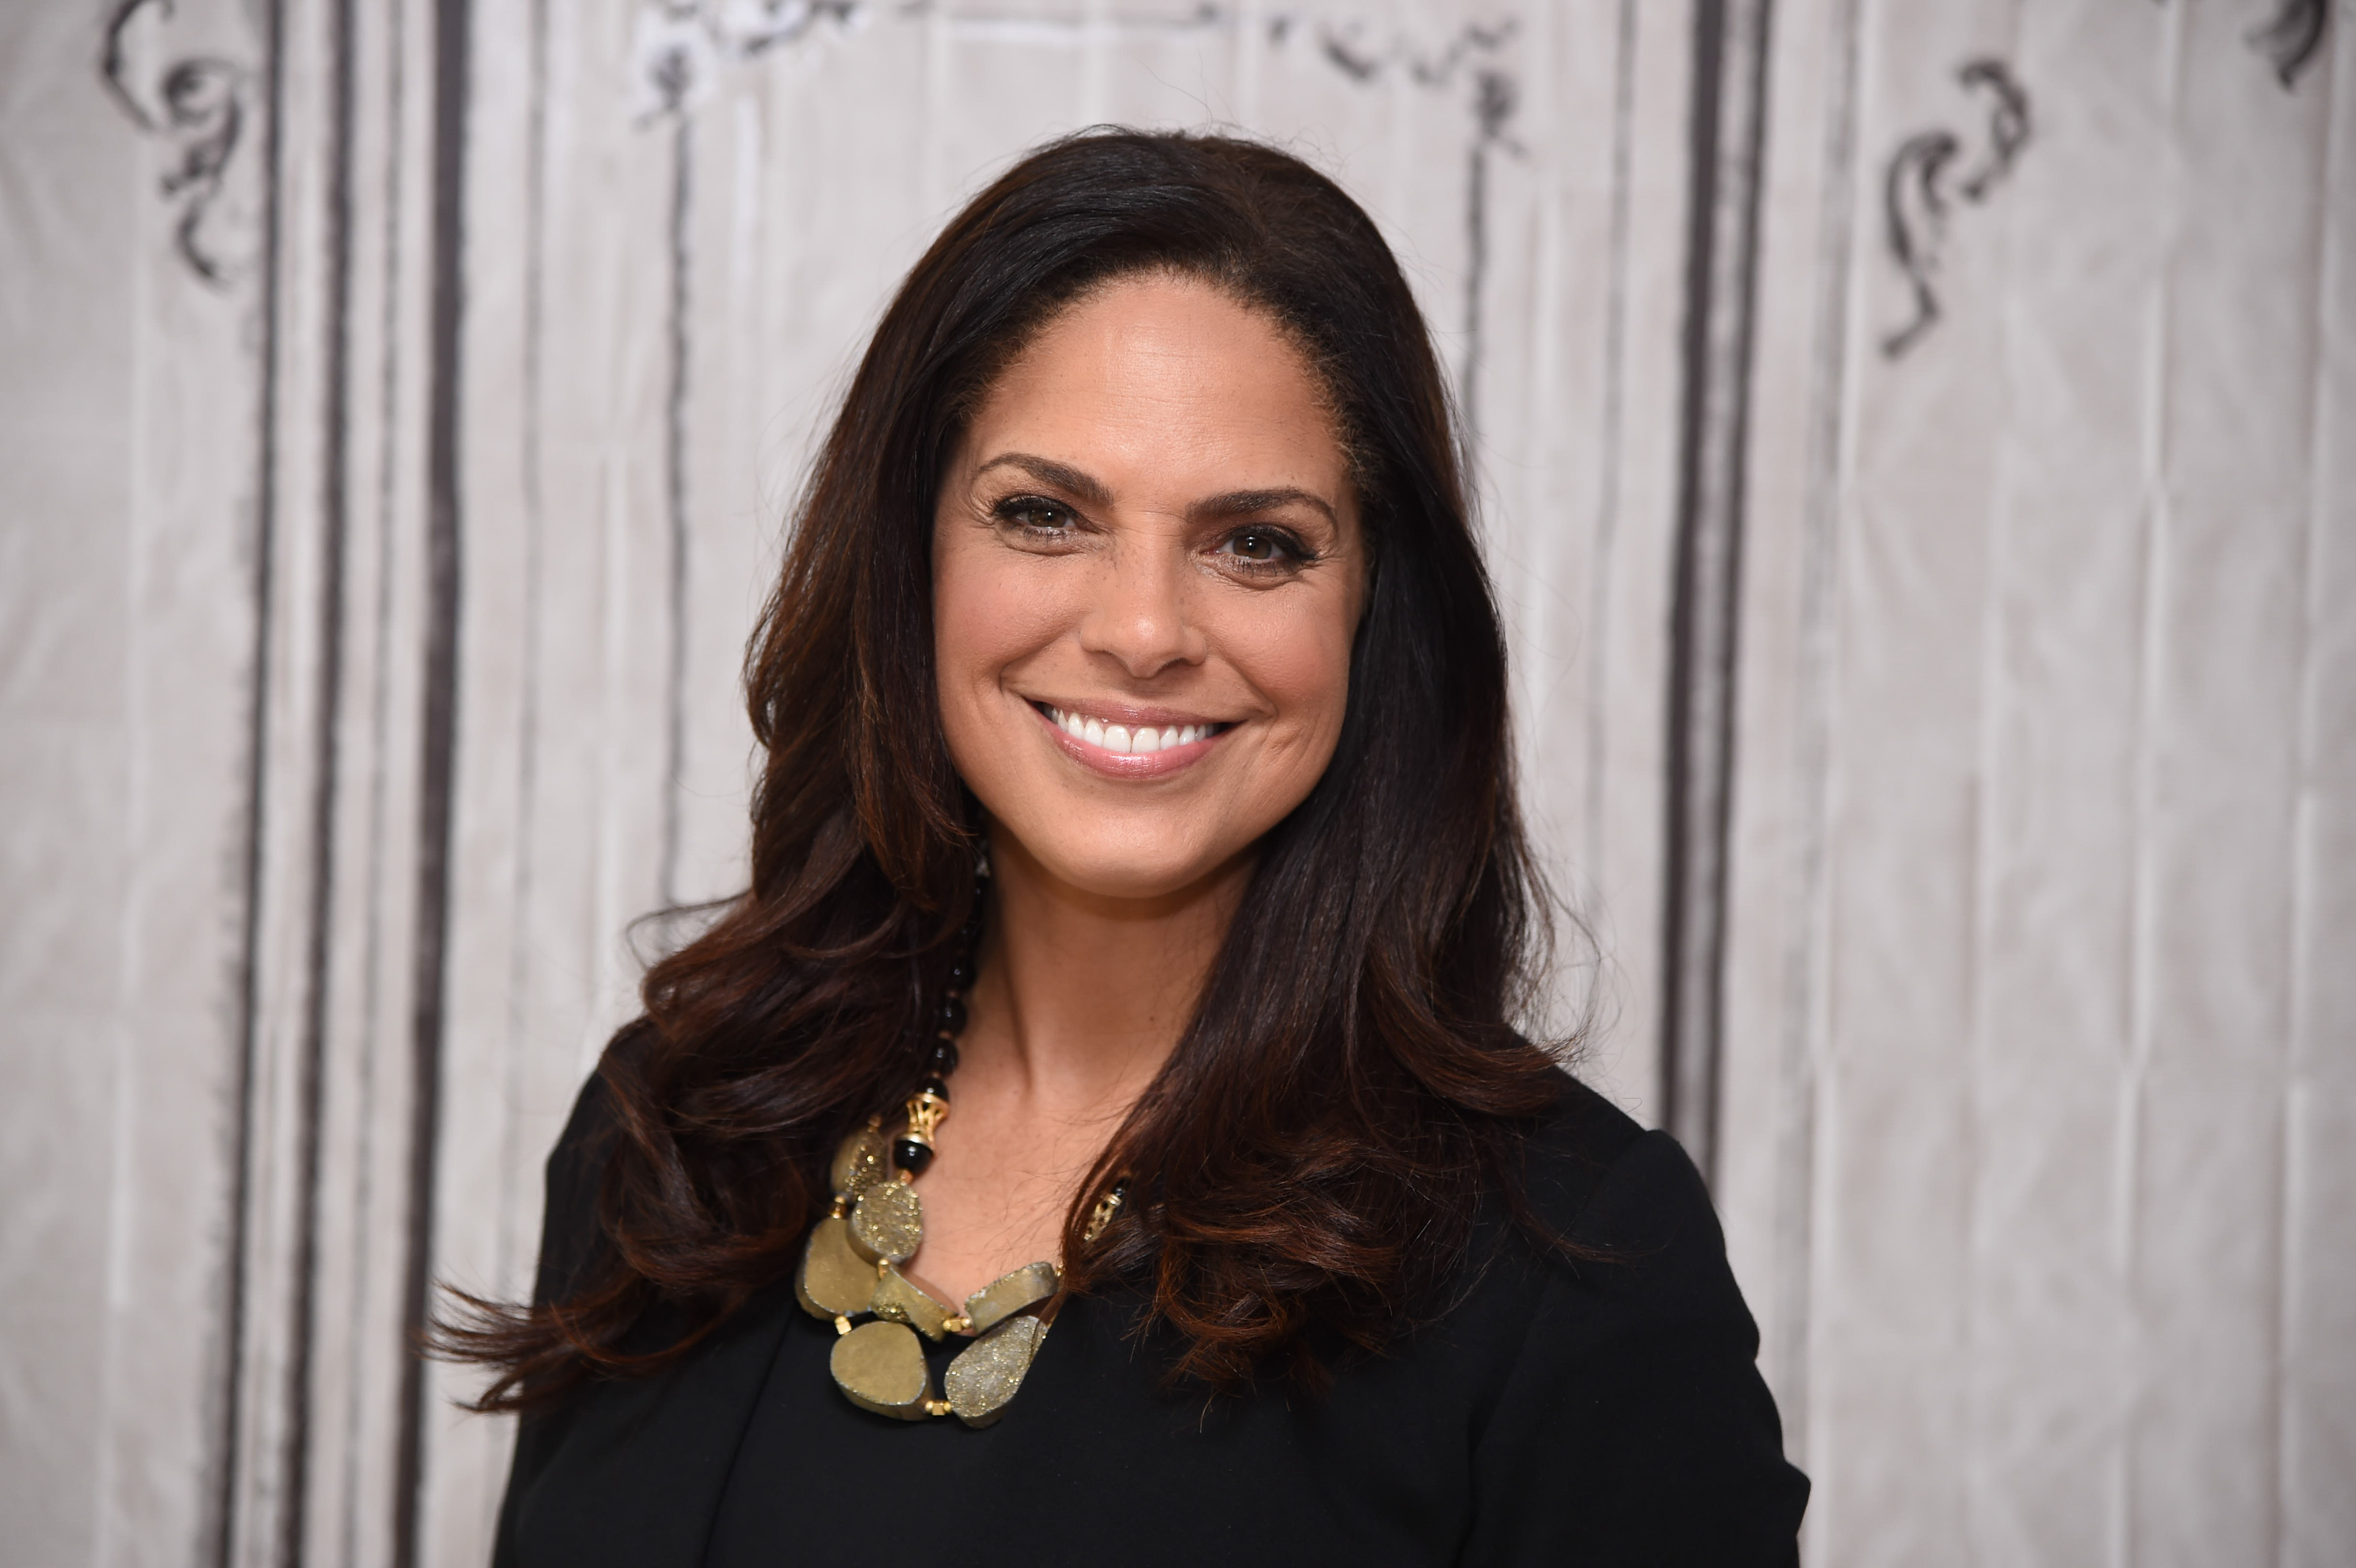 Broadcast journalist and executive producer Soledad O'Brien discusses  The War Comes Home - The New Battlefront  at AOL Studios In New York on May 20, 2016 in New York City.